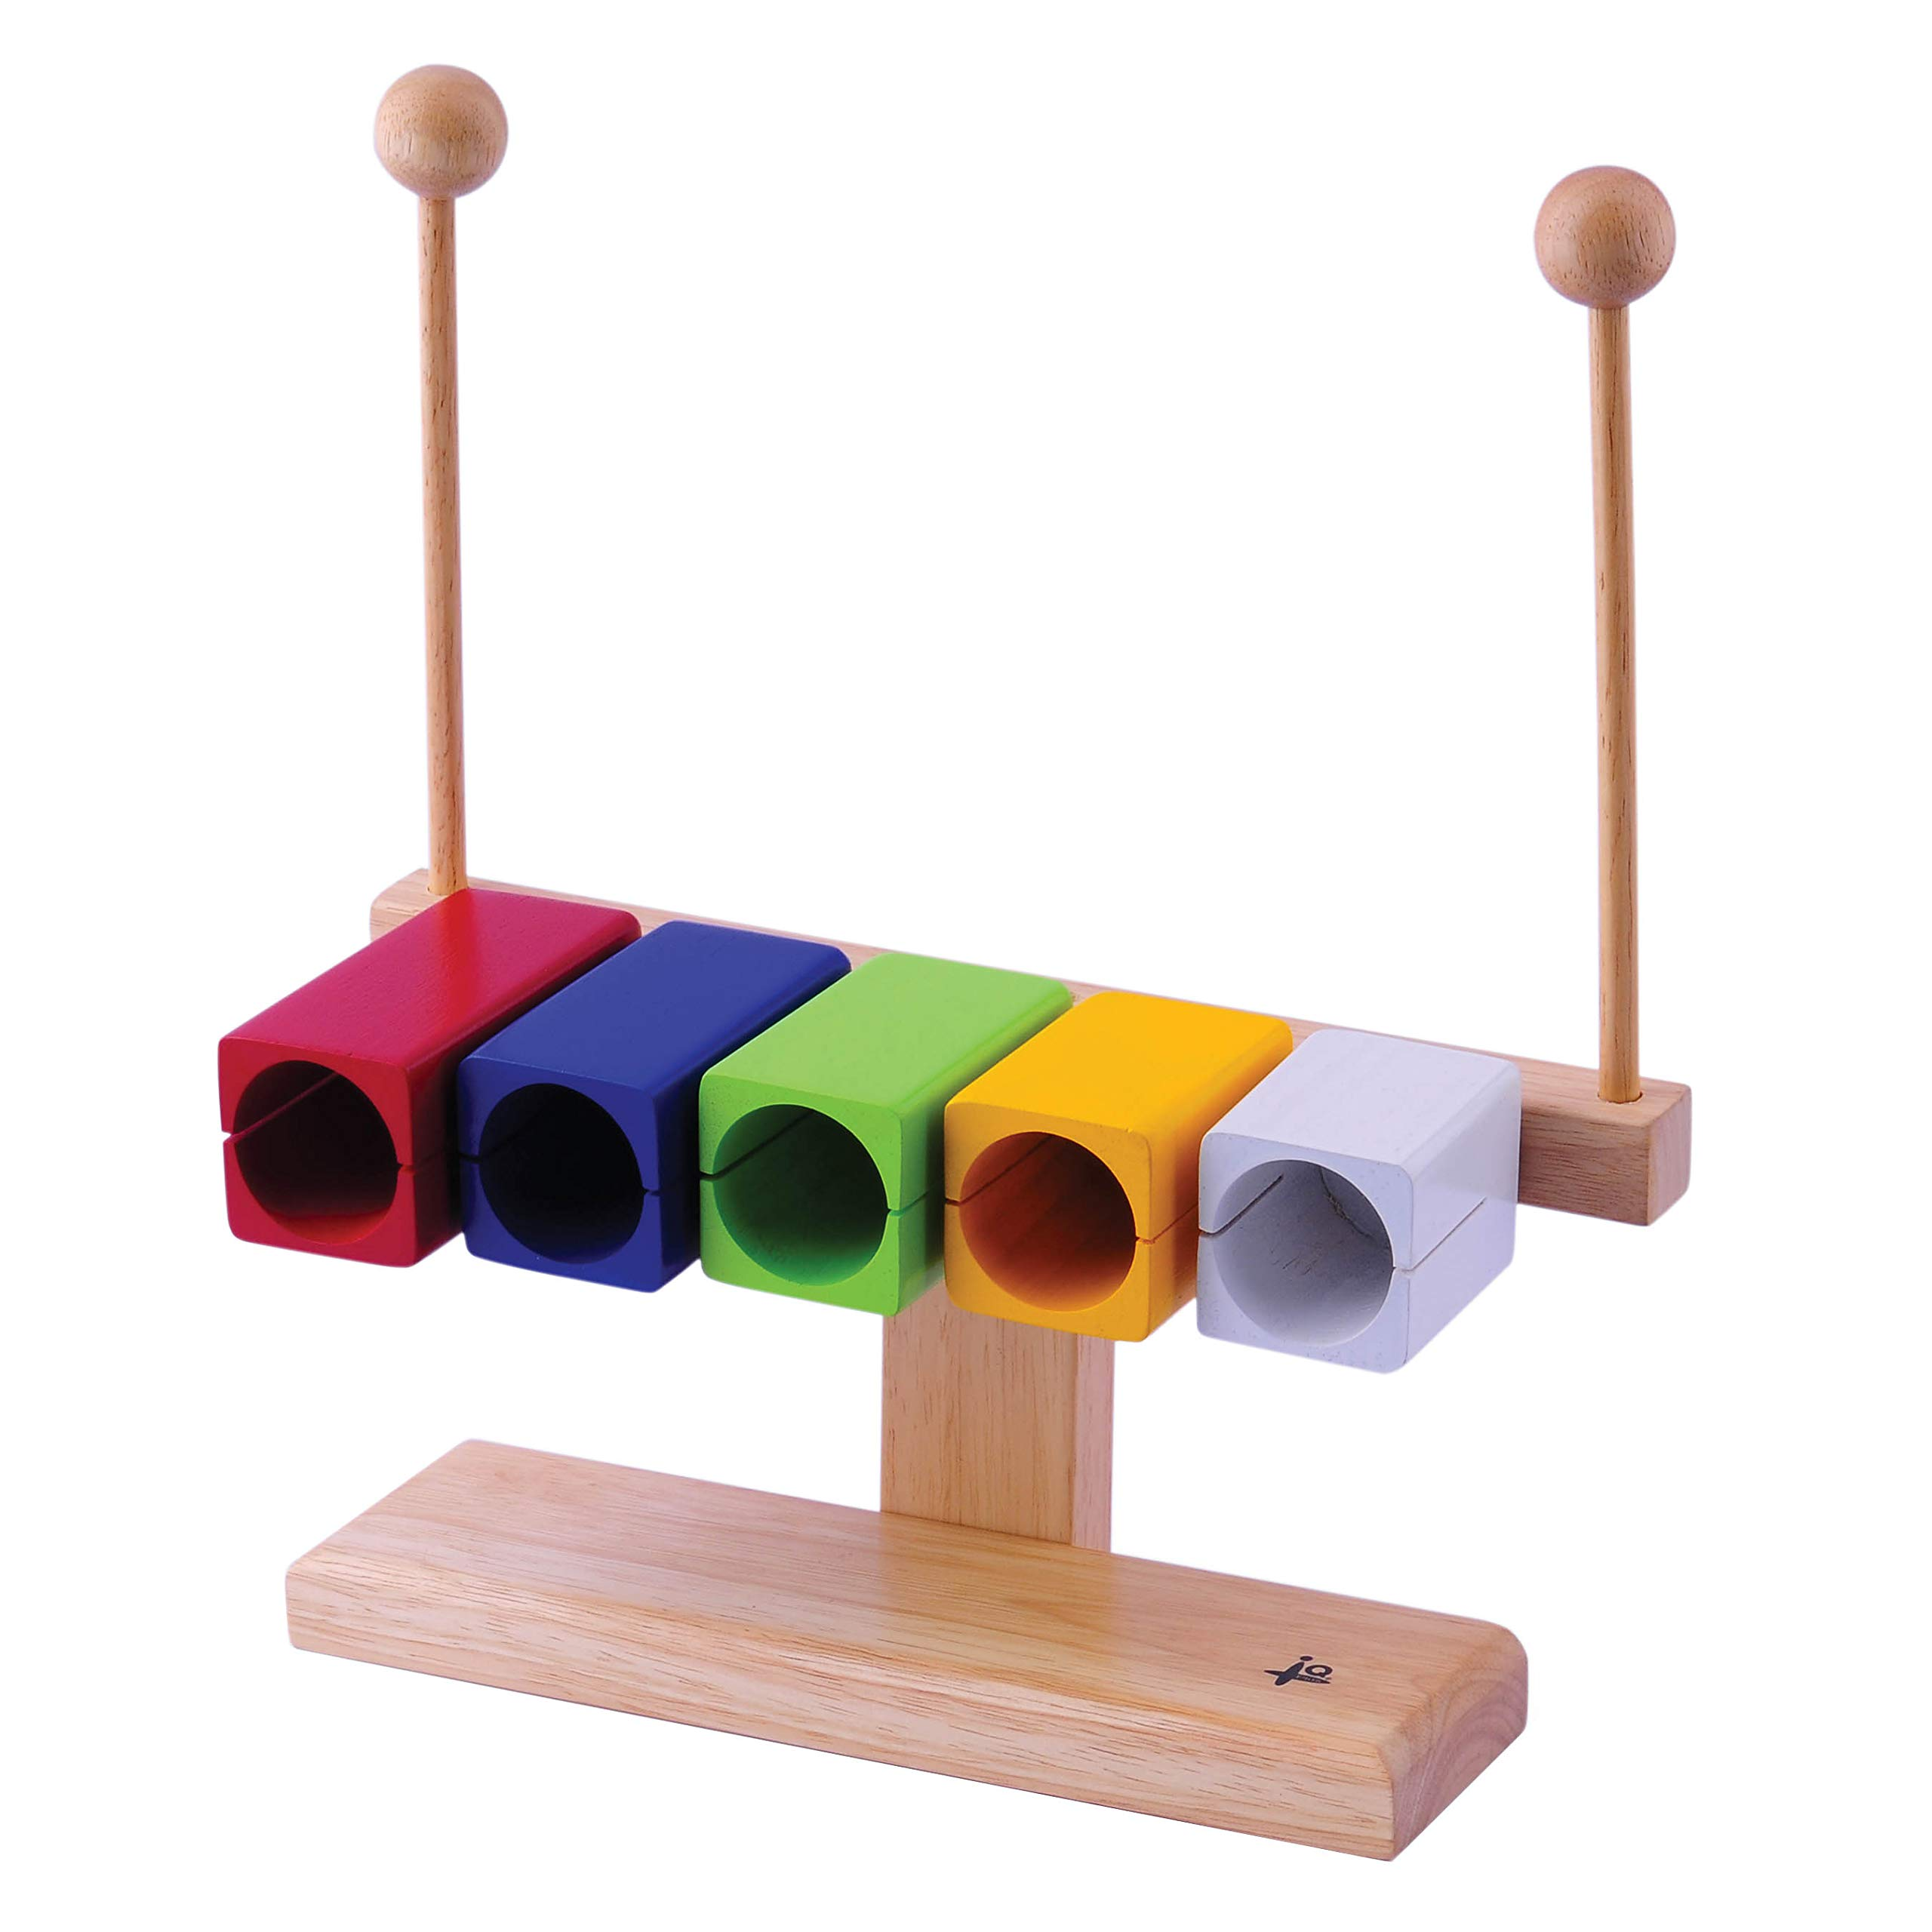 IQ Plus Percussion Blocks (IQ-PS010-00) by IQ Plus